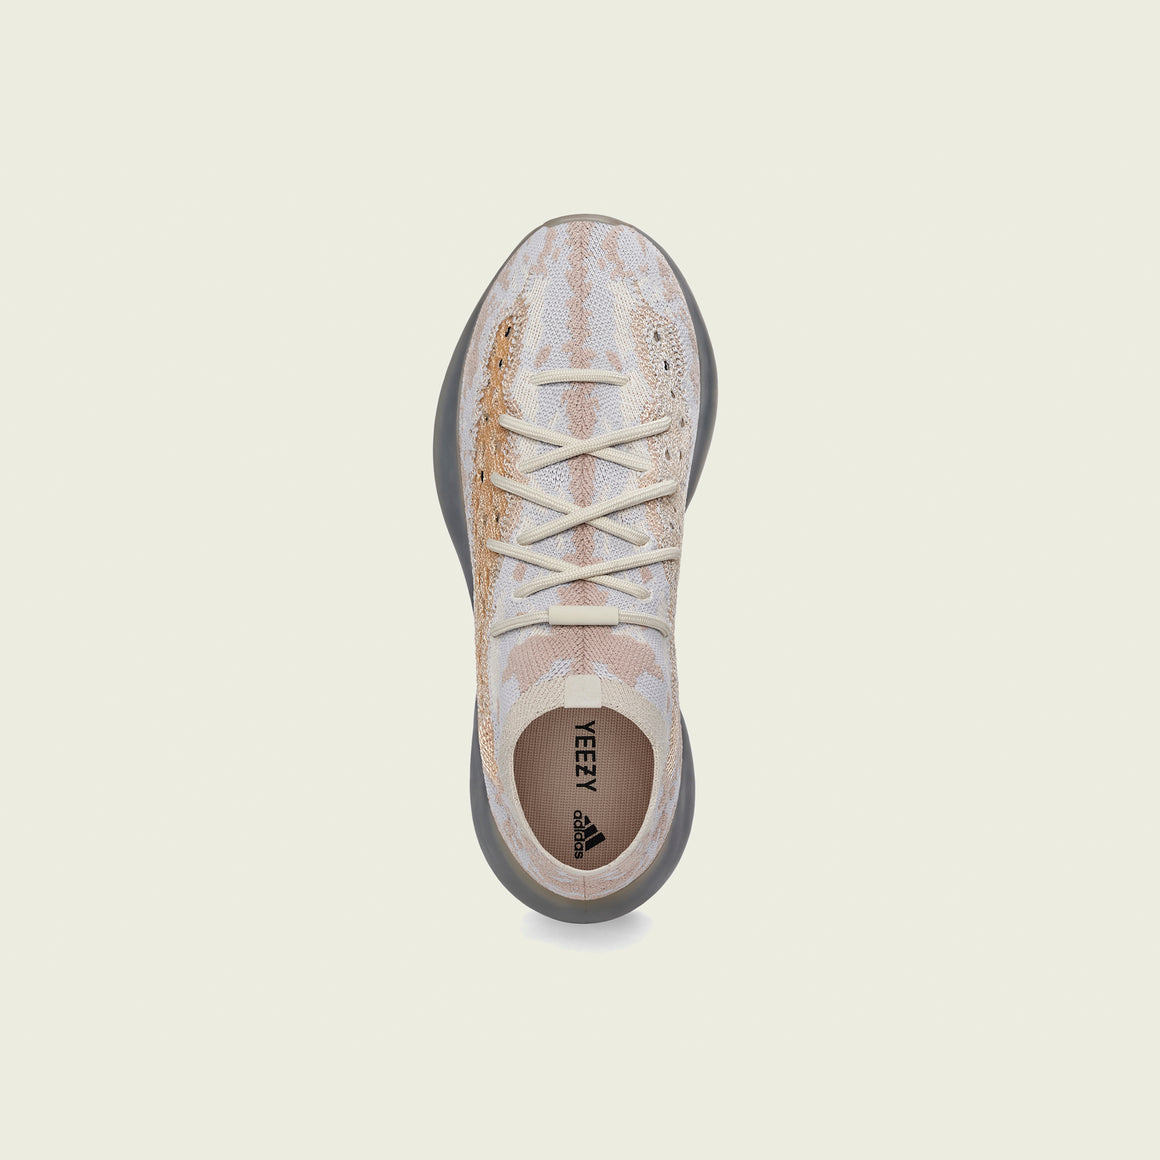 adidas - Yeezy Boost 380 - Pepper - Up There